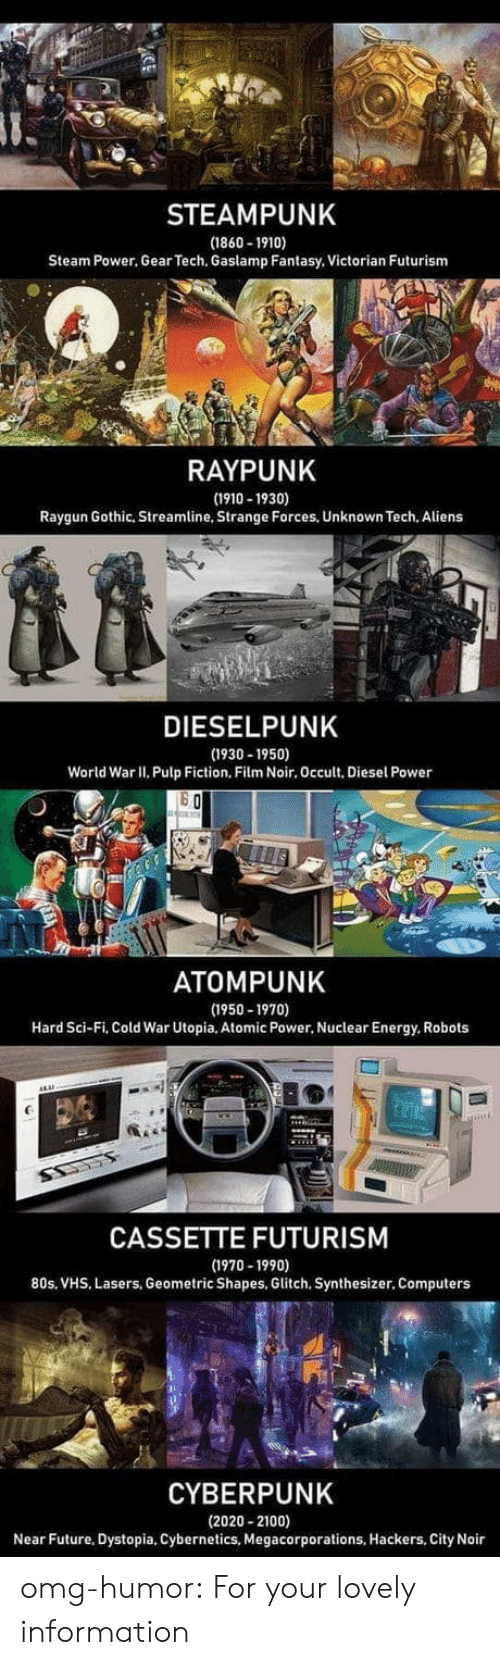 shapes: STEAMPUNK  (1860-1910)  Steam Power, Gear Tech, Gaslamp Fantasy, Victorian Futurism  RAYPUNK  (1910-1930)  Raygun Gothic, Streamline, Strange Forces, Unknown Tech. Aliens  DIESELPUNK  (1930-1950)  World War II. Pulp Fiction, Film Noir, Occult, Diesel Power  ATOMPUNK  (1950-1970)  Hard Sci-Fi, Cold War Utopia, Atomic Power, Nuclear Energy, Robots  CASSETTE FUTURISM  (1970-1990)  80s, VHS, Lasers, Geometric Shapes, Glitch, Synthesizer. Computers  CYBERPUNK  (2020-2100)  Near Future, Dystopia, Cybernetics, Megacorporations, Hackers, City Noir omg-humor:  For your lovely information